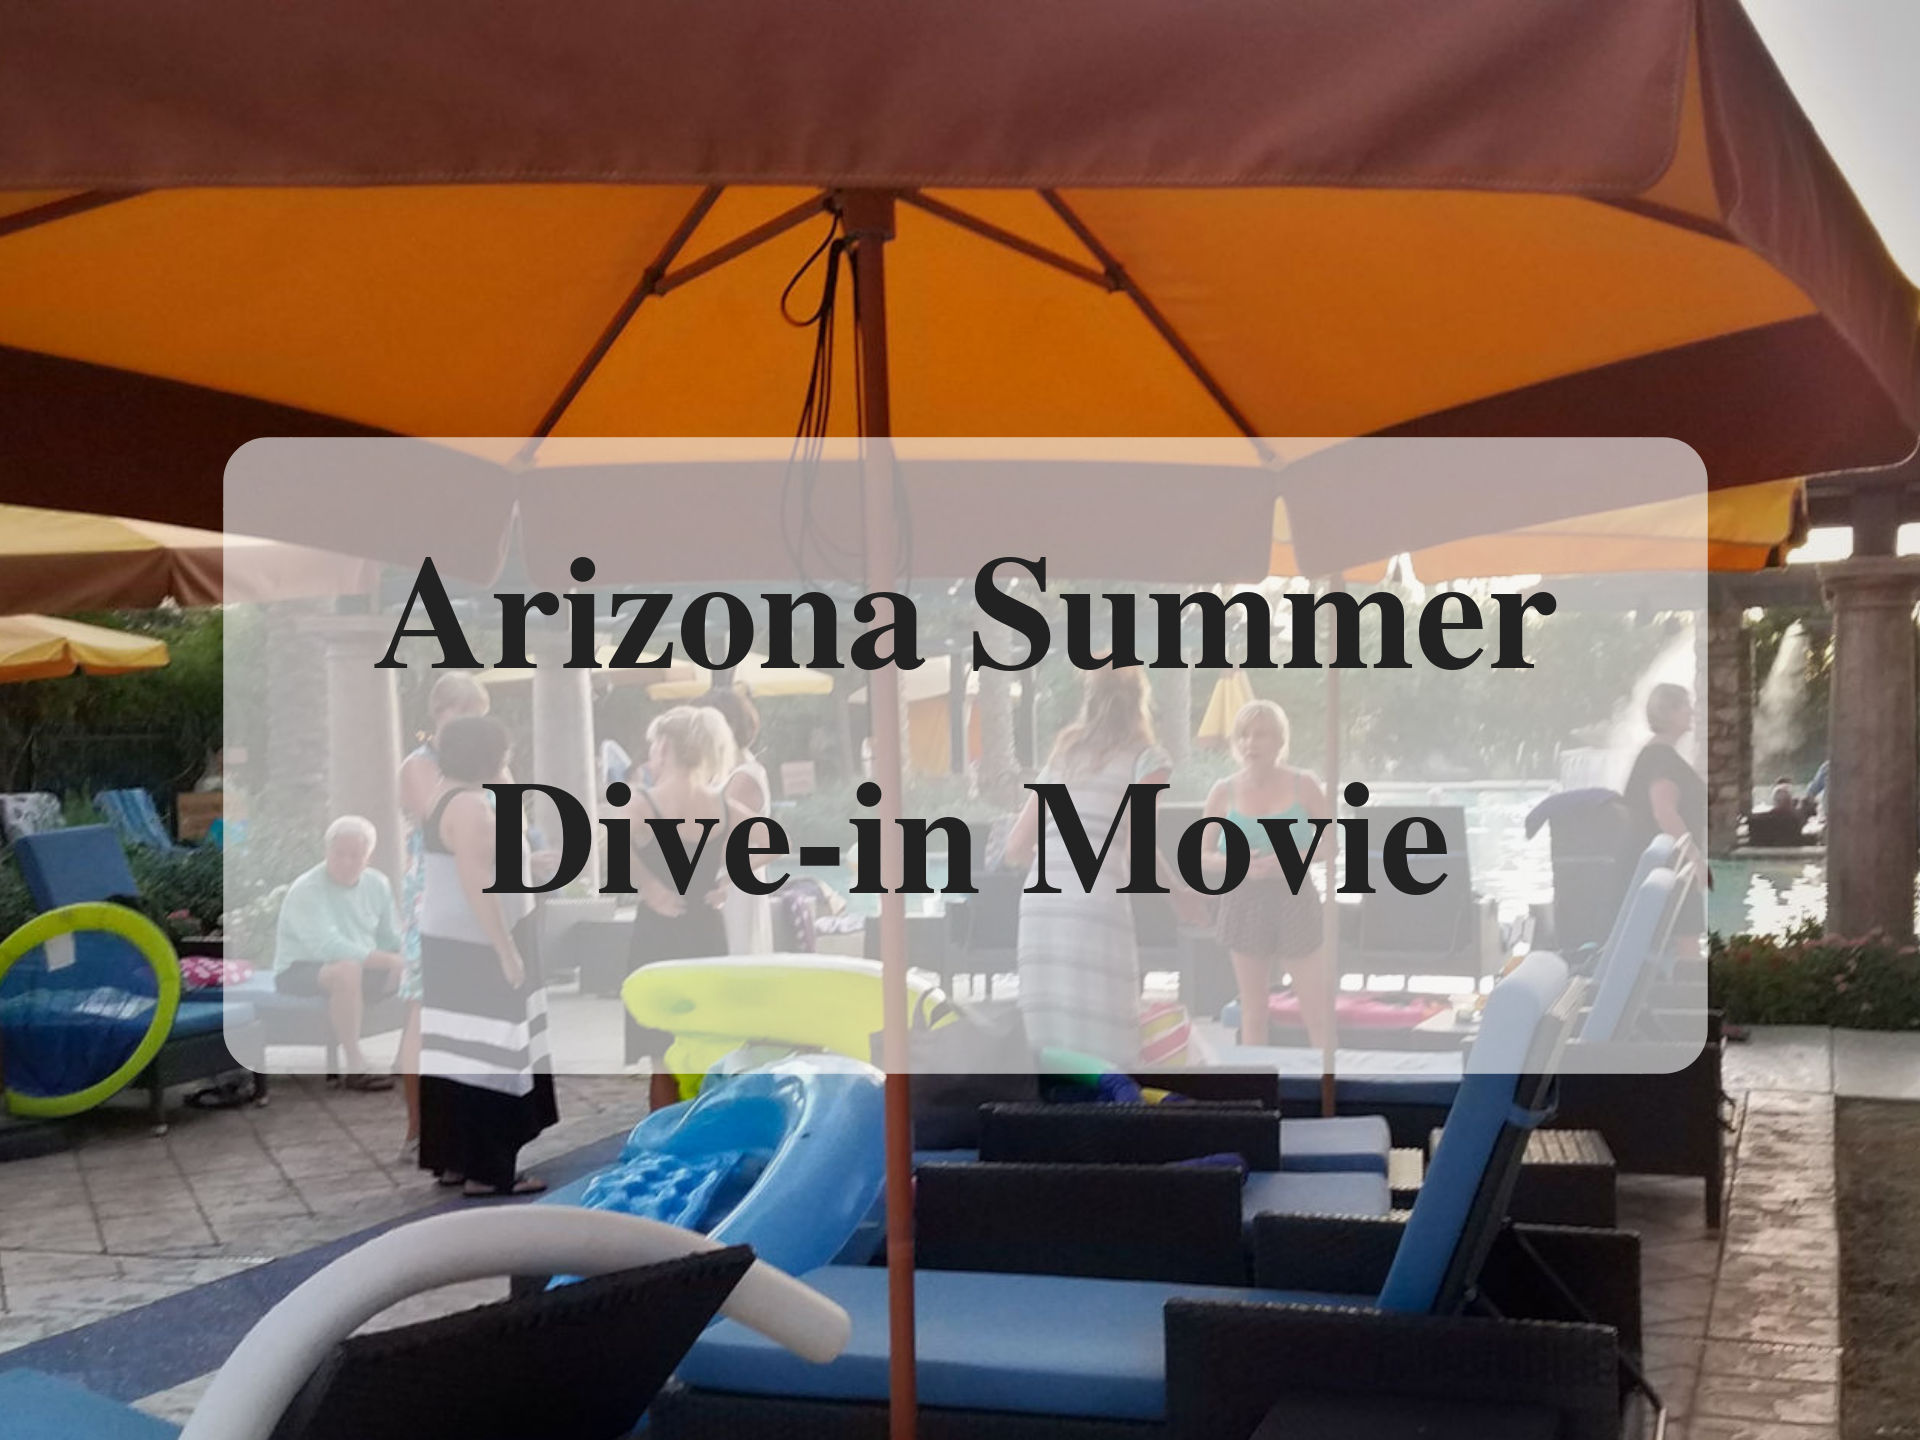 Arizona Summer Dive-in Movie